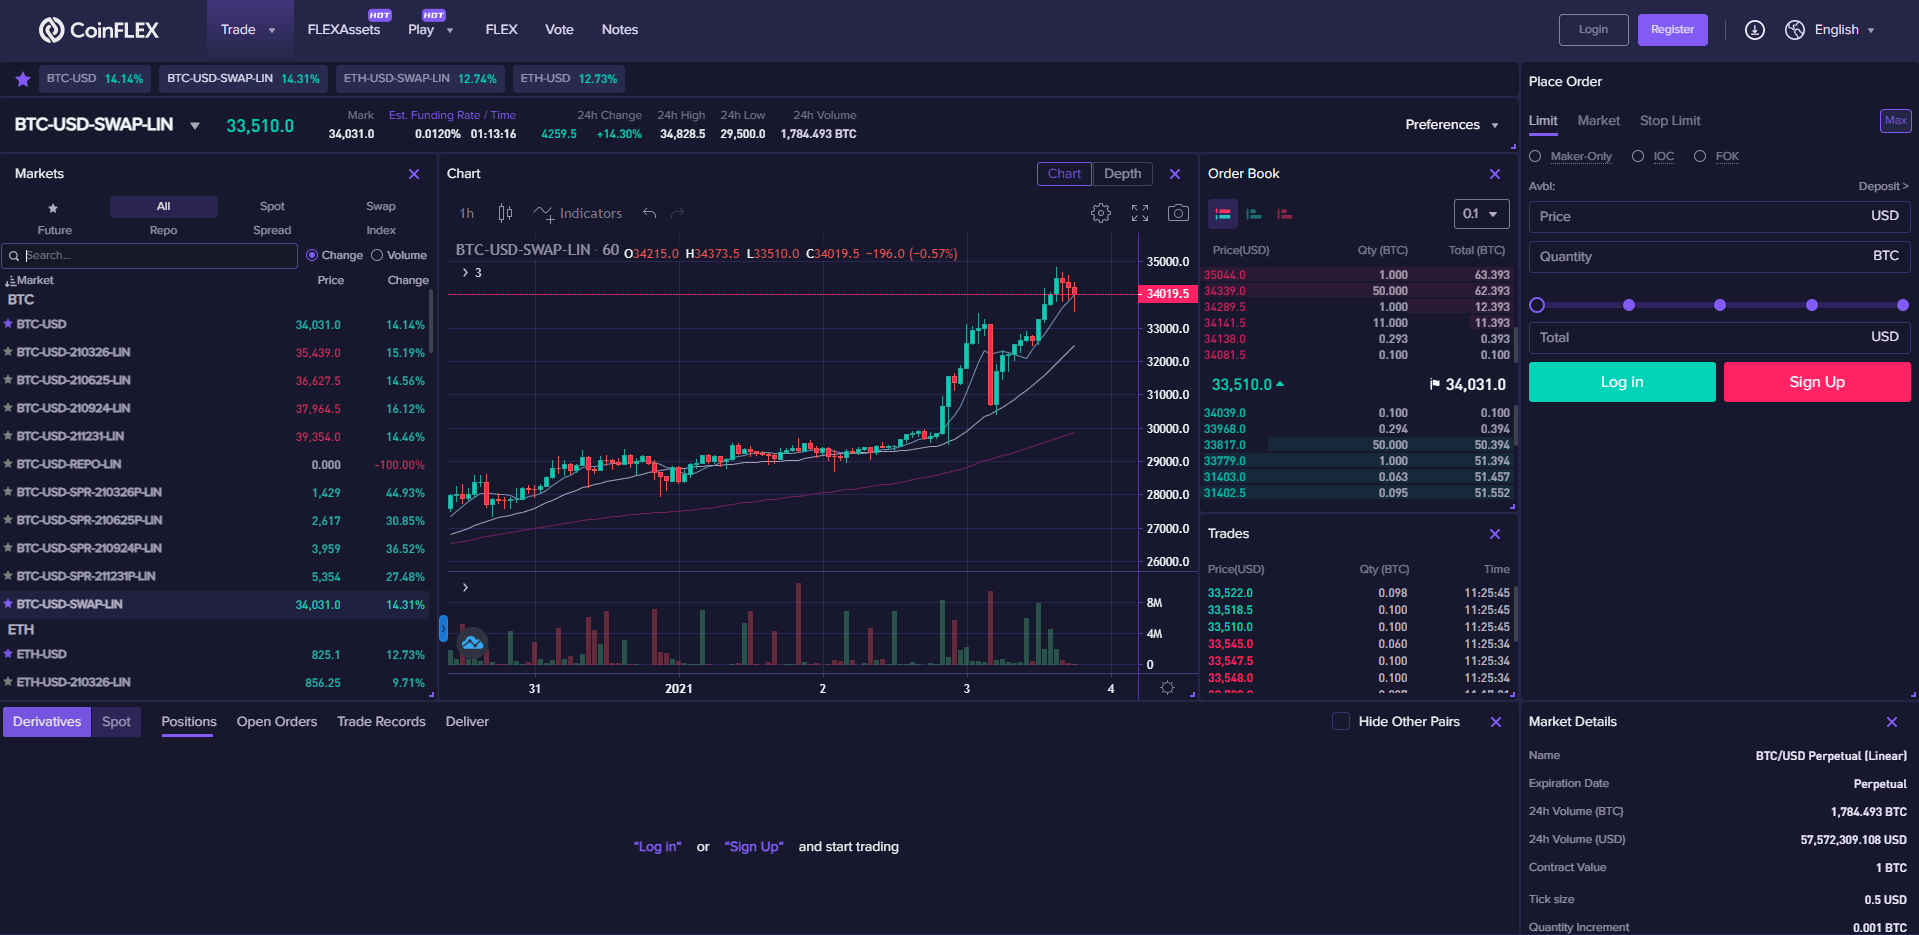 CoinFLEX Trading View